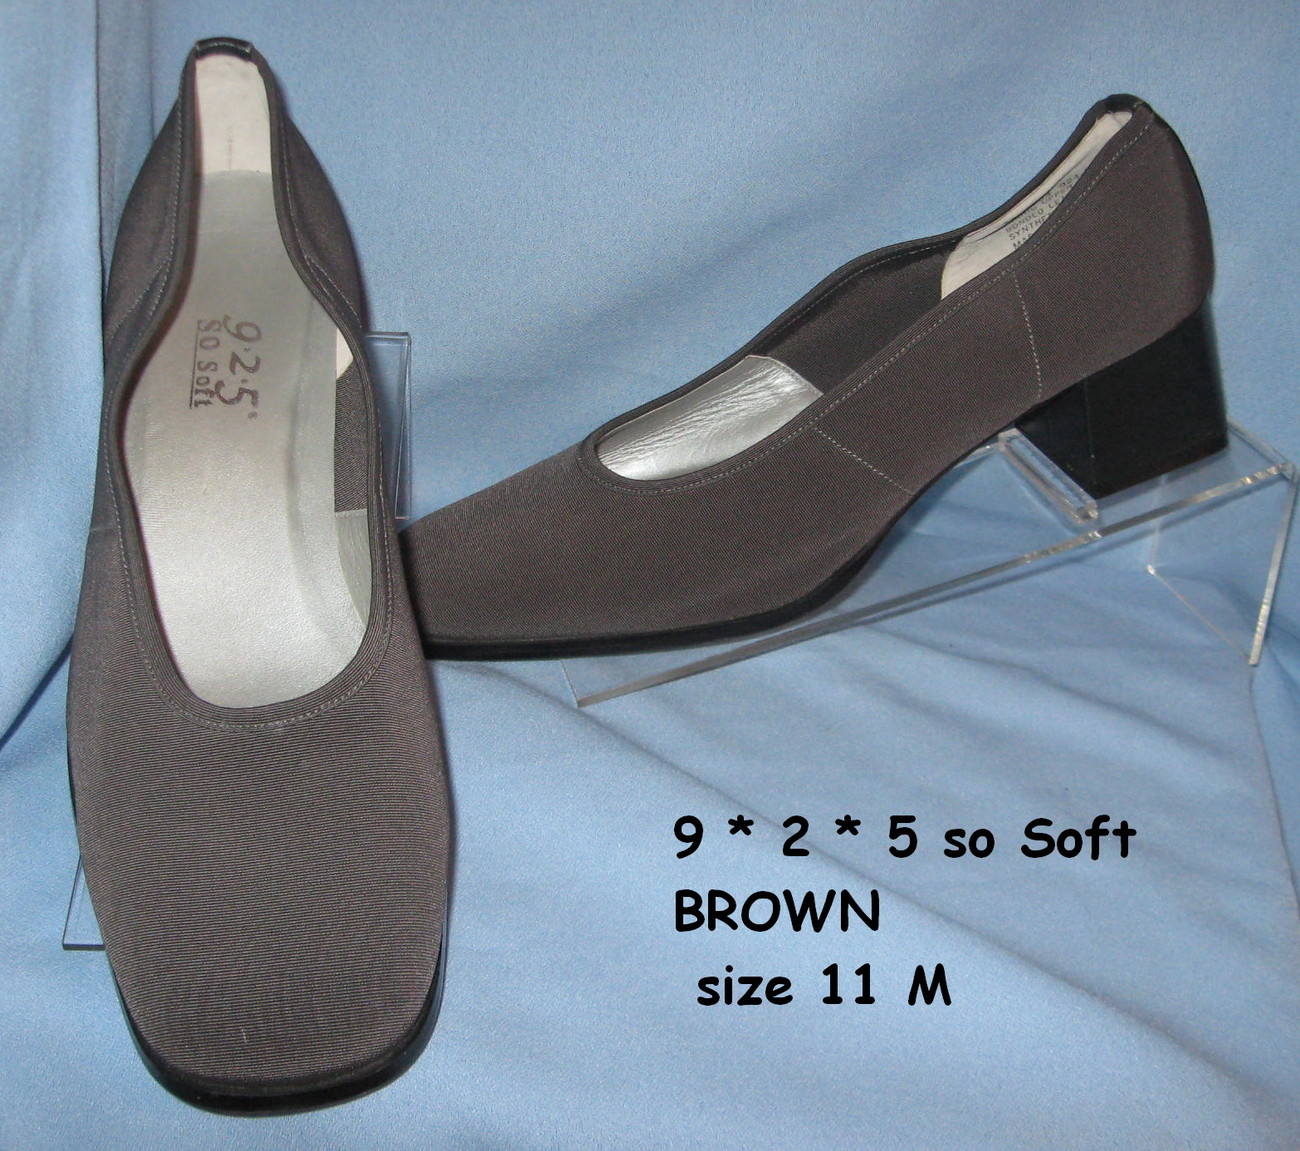 9 2 5 So Soft casual Dress Shoe 11 M Brown microfiber Fabric mid heel Pump S2B